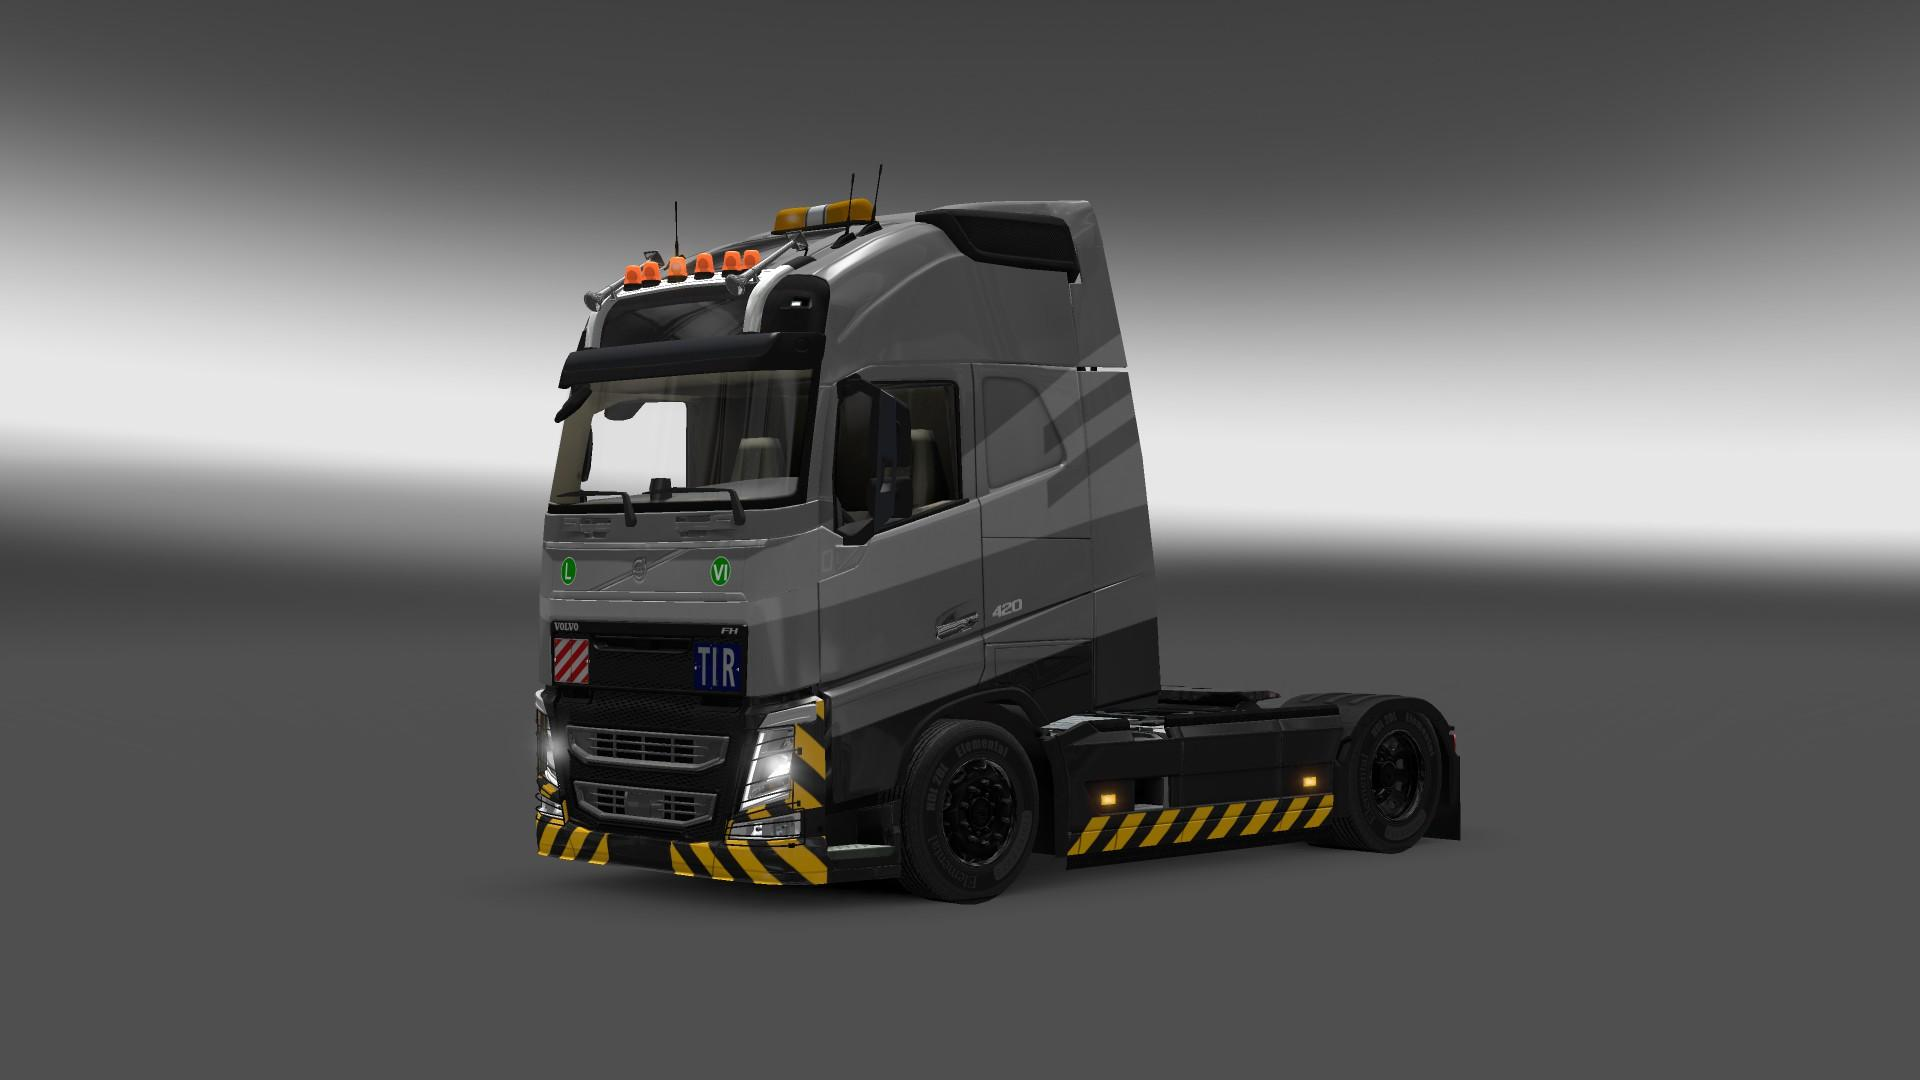 Volvo Fh 2012 Low 1 22 X Truck